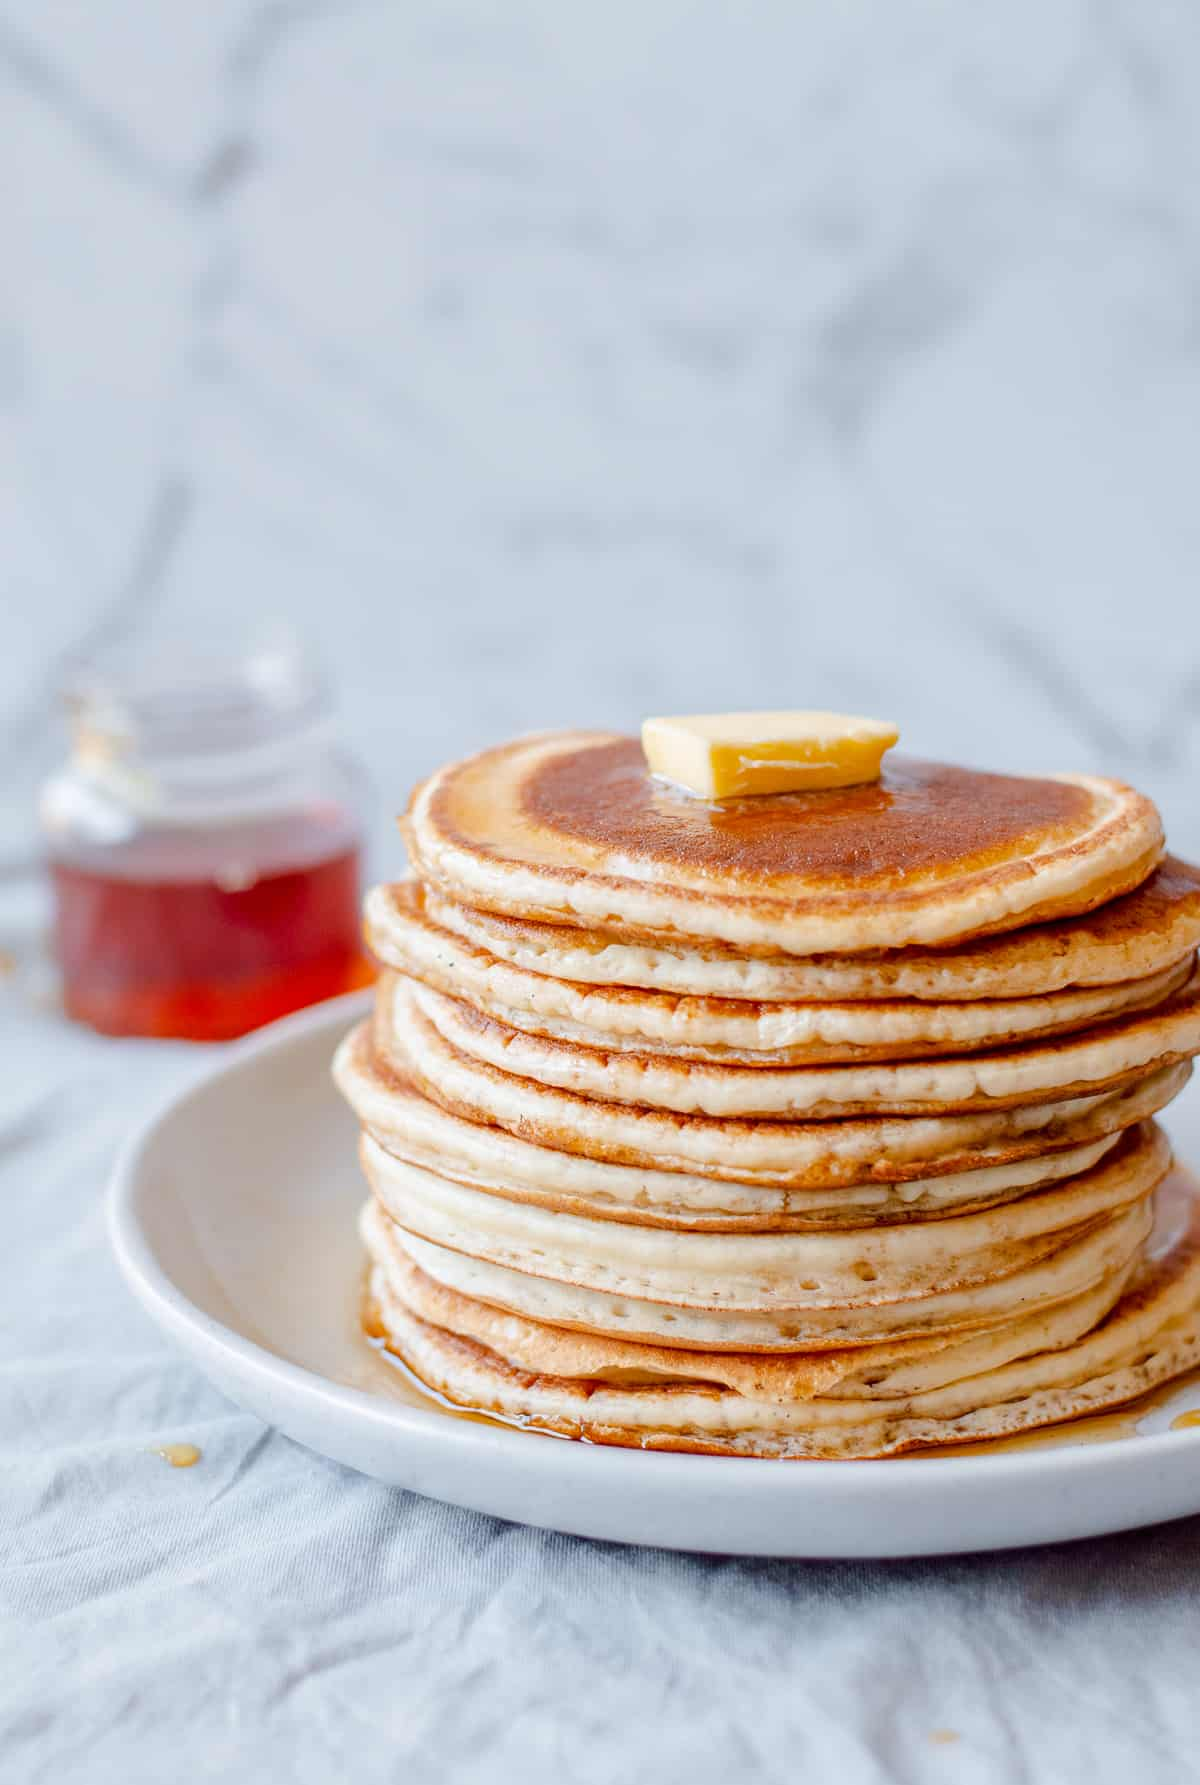 A stack of pancakes with butter on top and maple syrup.